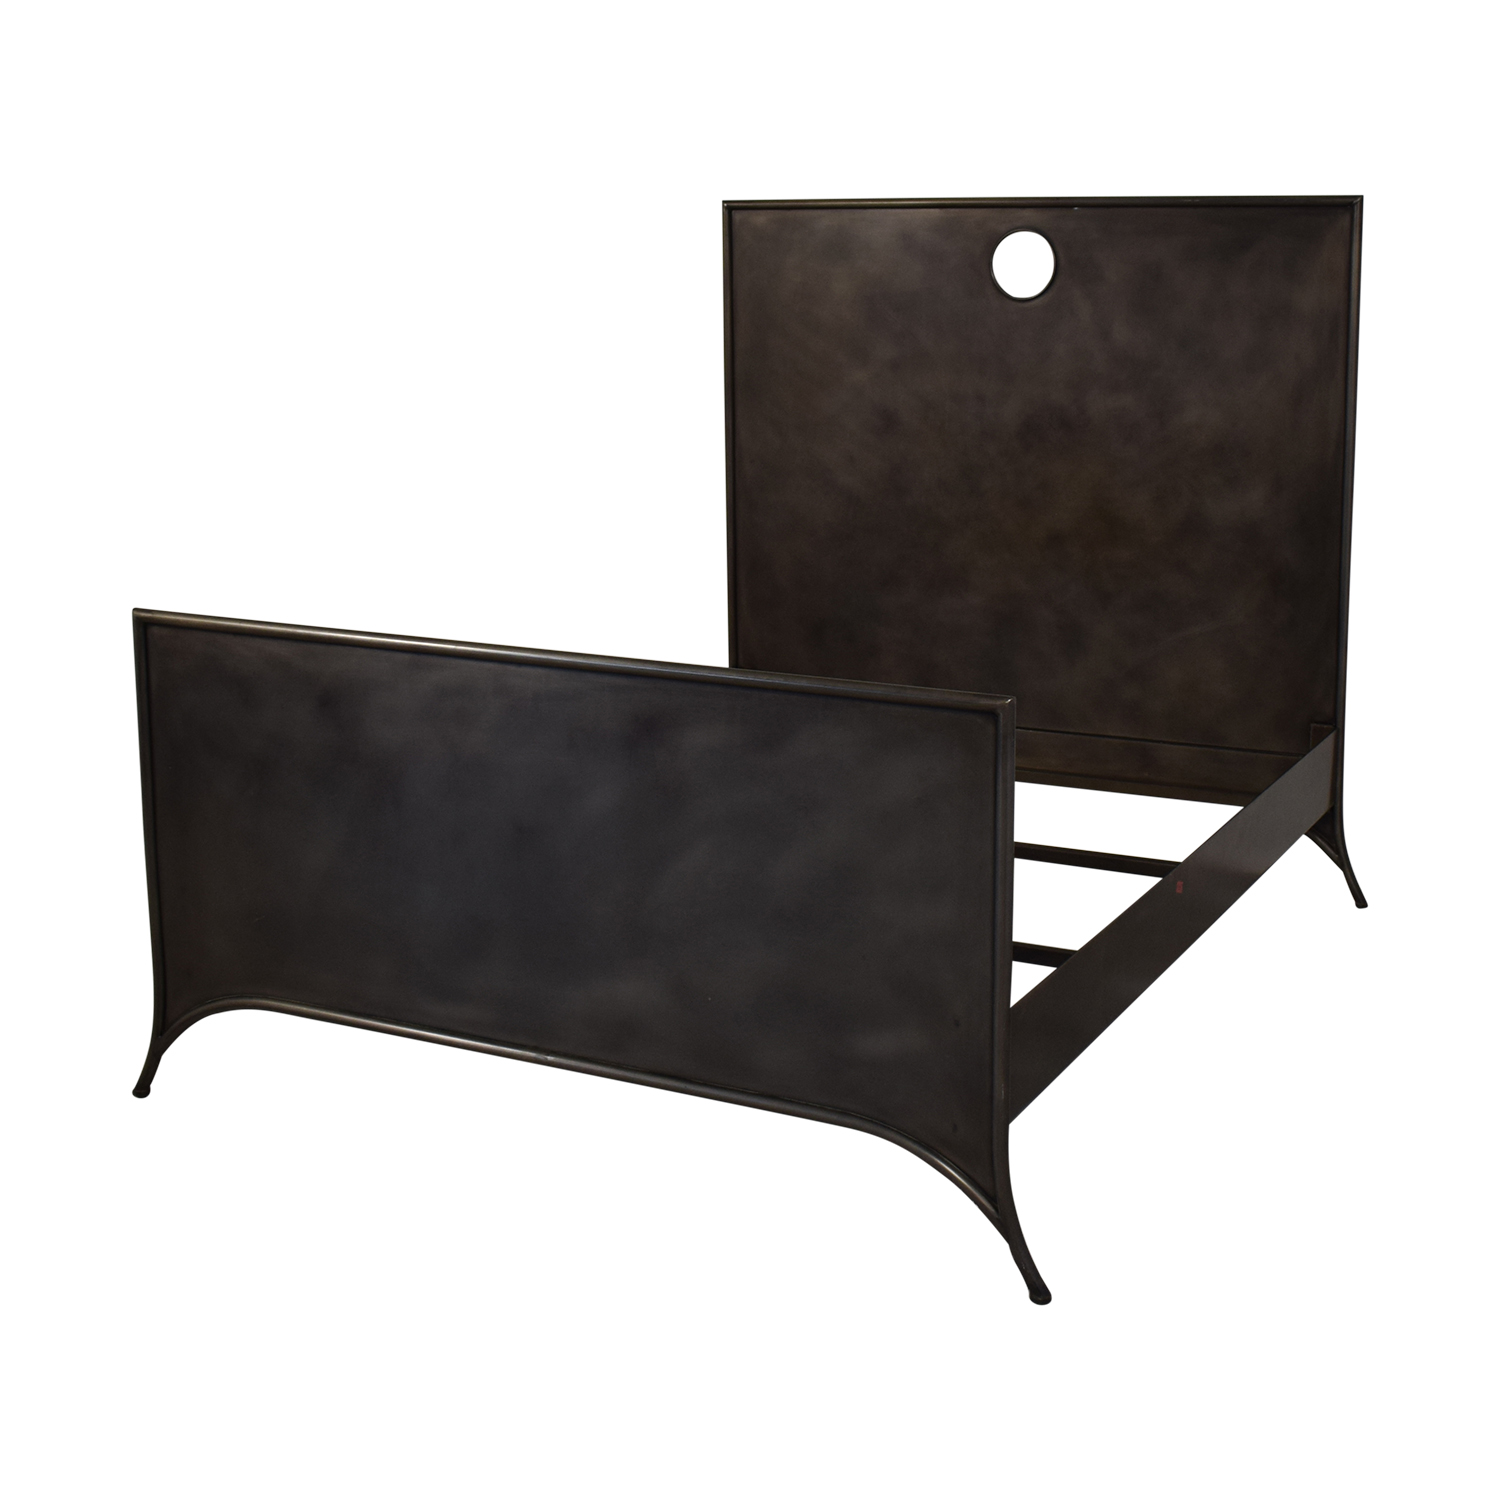 Restoration Hardware Queen 19th C. Keyhole Metal Square Bed with Footboard Restoration Hardware